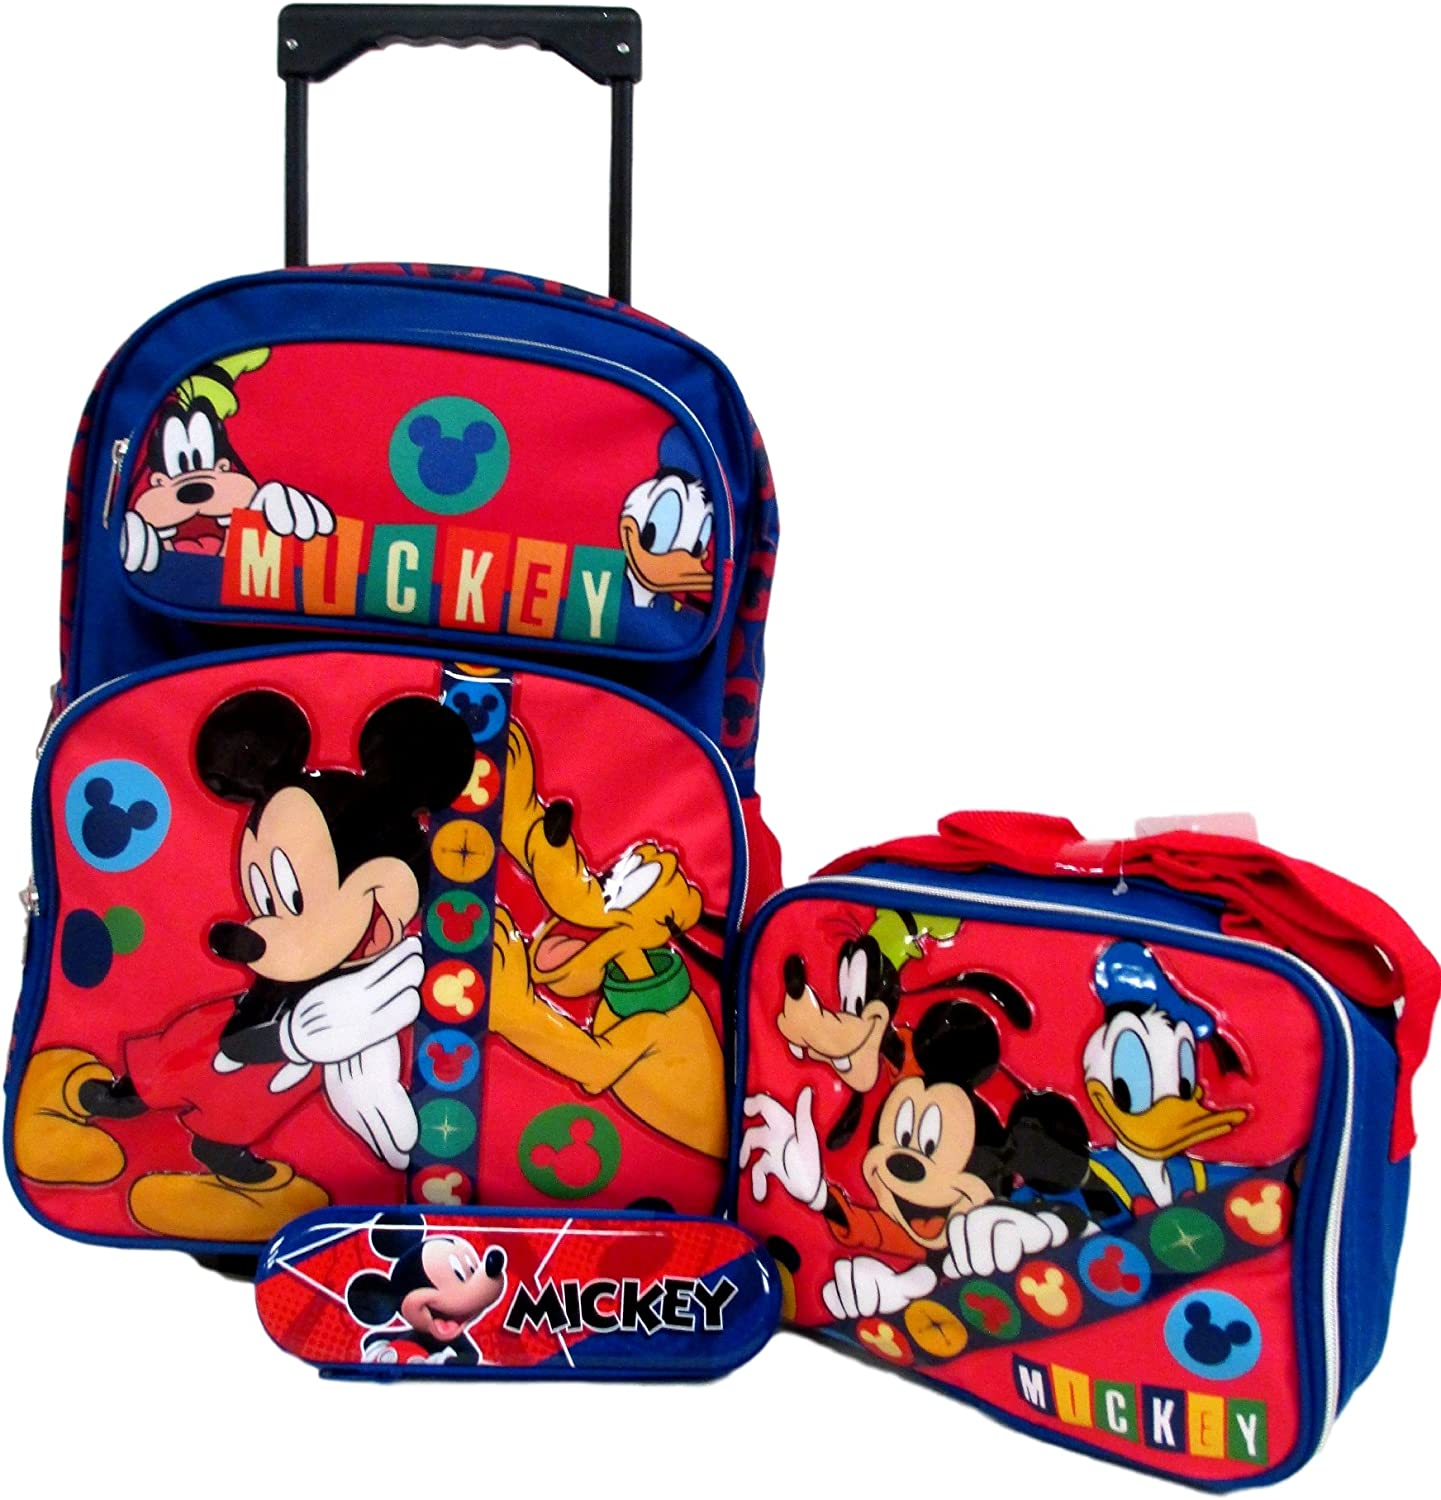 Lunch Box /& Pencil Case Set! Mickey Mouse Disney Large 16 Rolling Roller Wheeled Backpack Book Bag